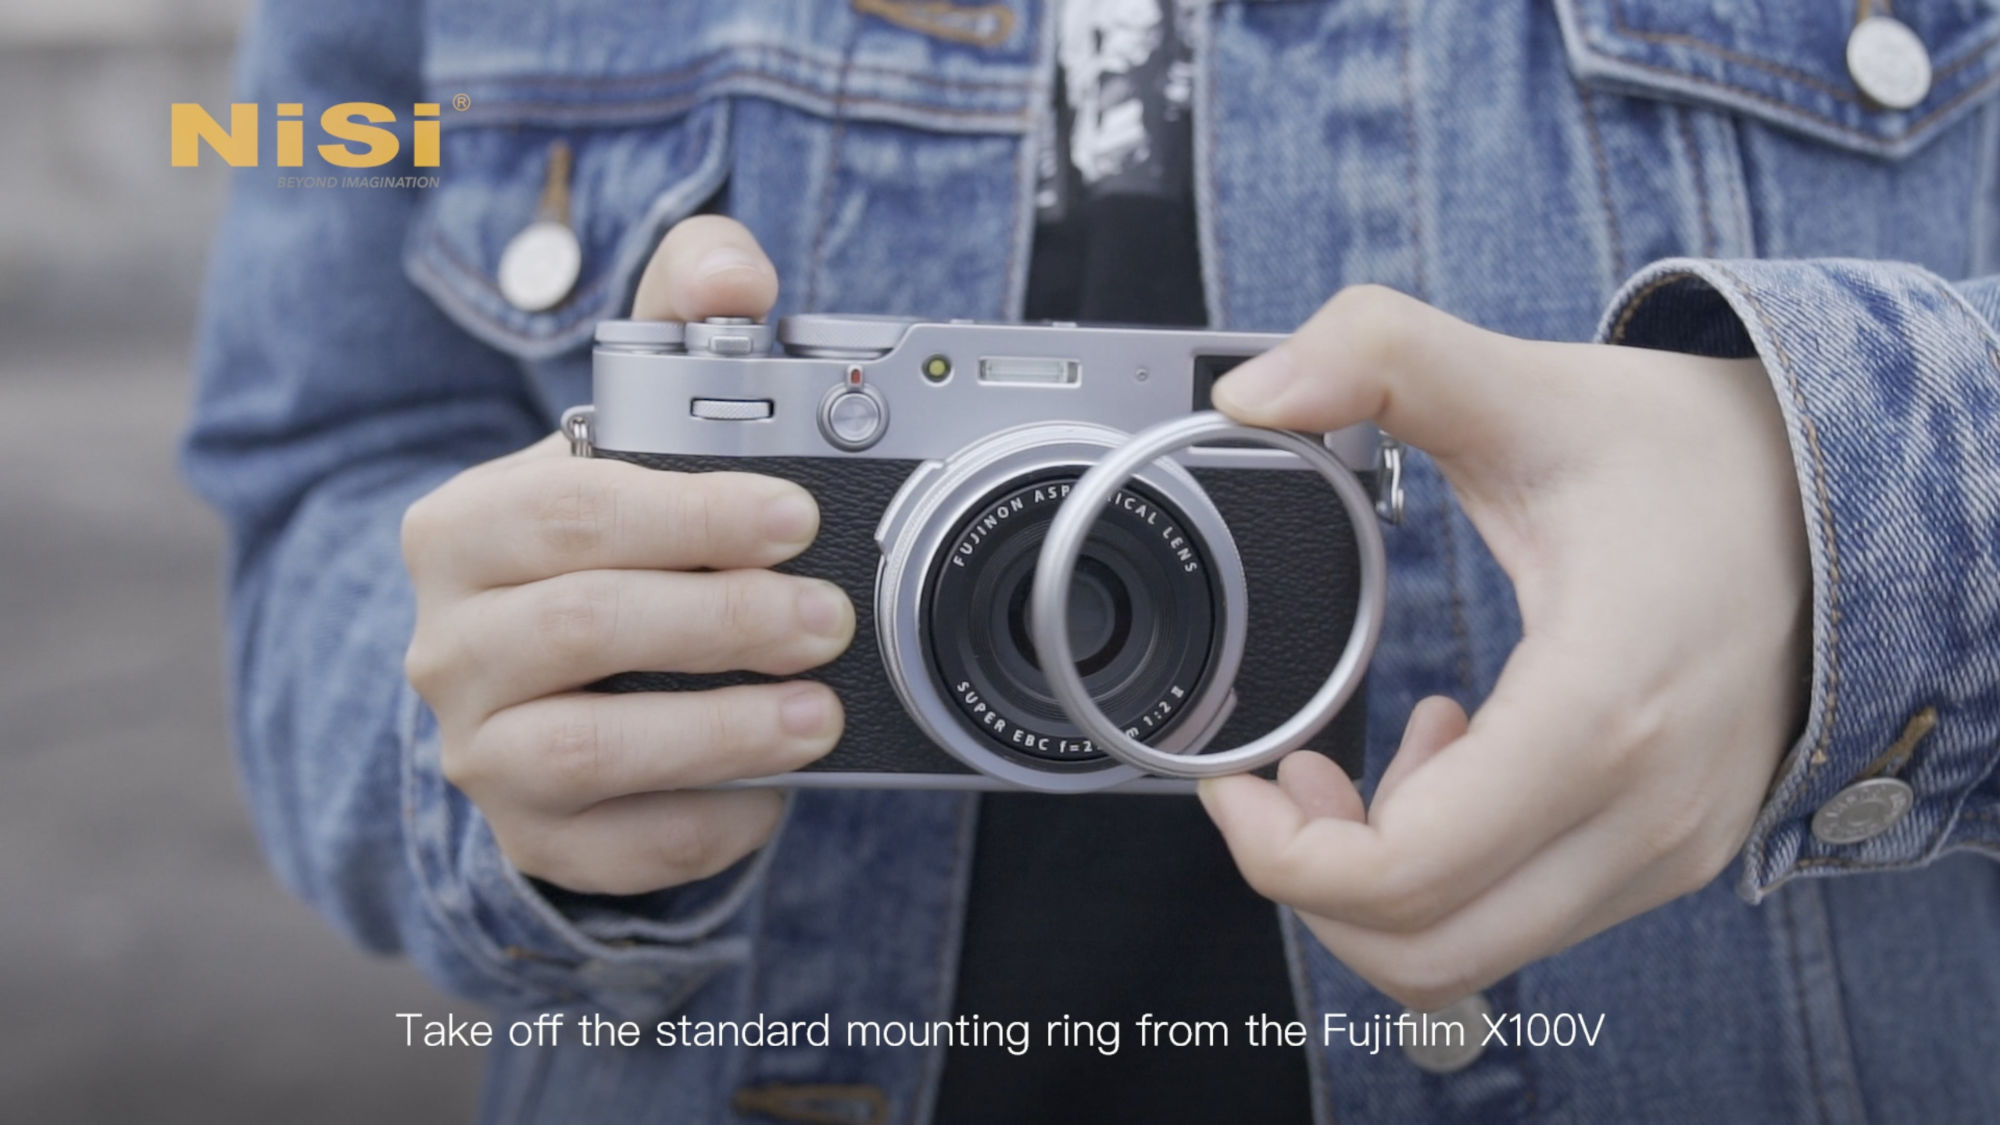 NiSi Filter System for Fujifilm X100